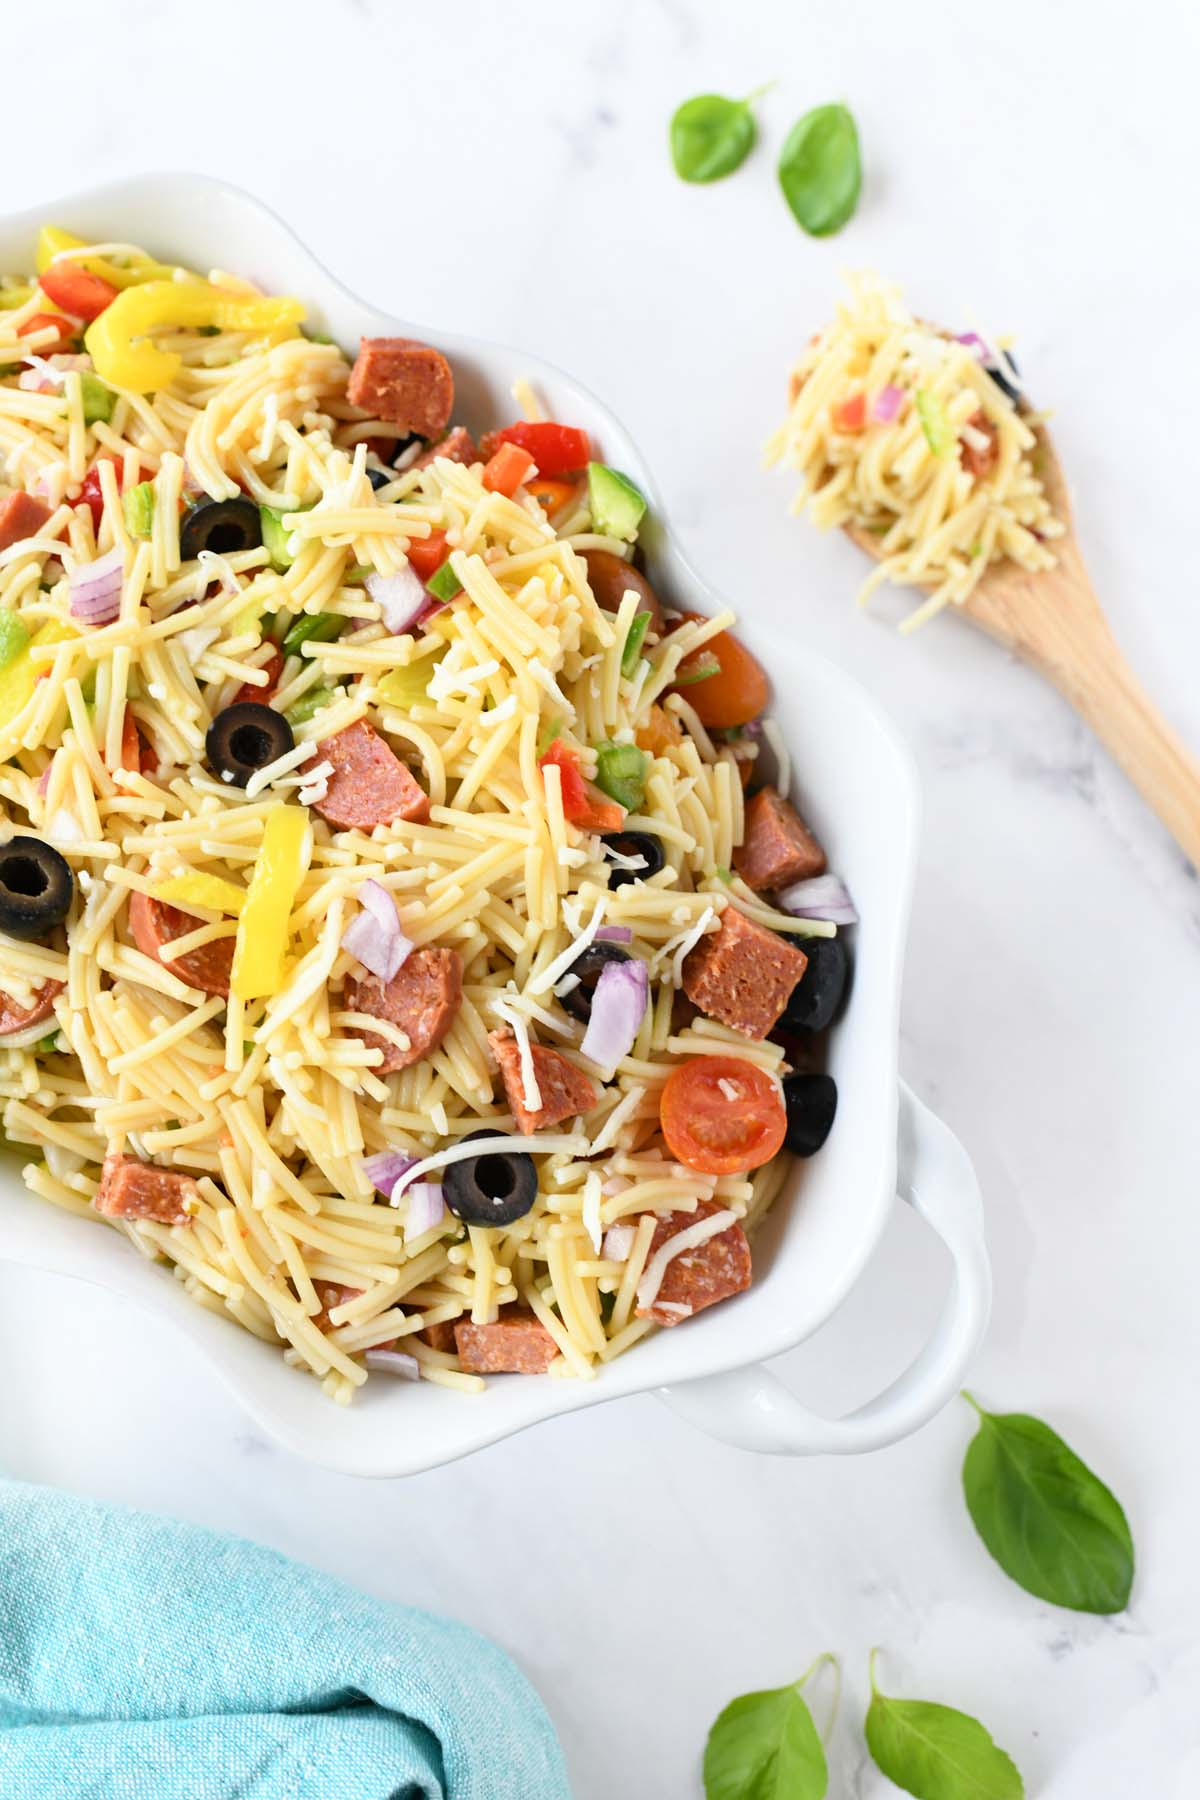 Cold Pizza Pasta Salad in a white dish with a wooden spoon.